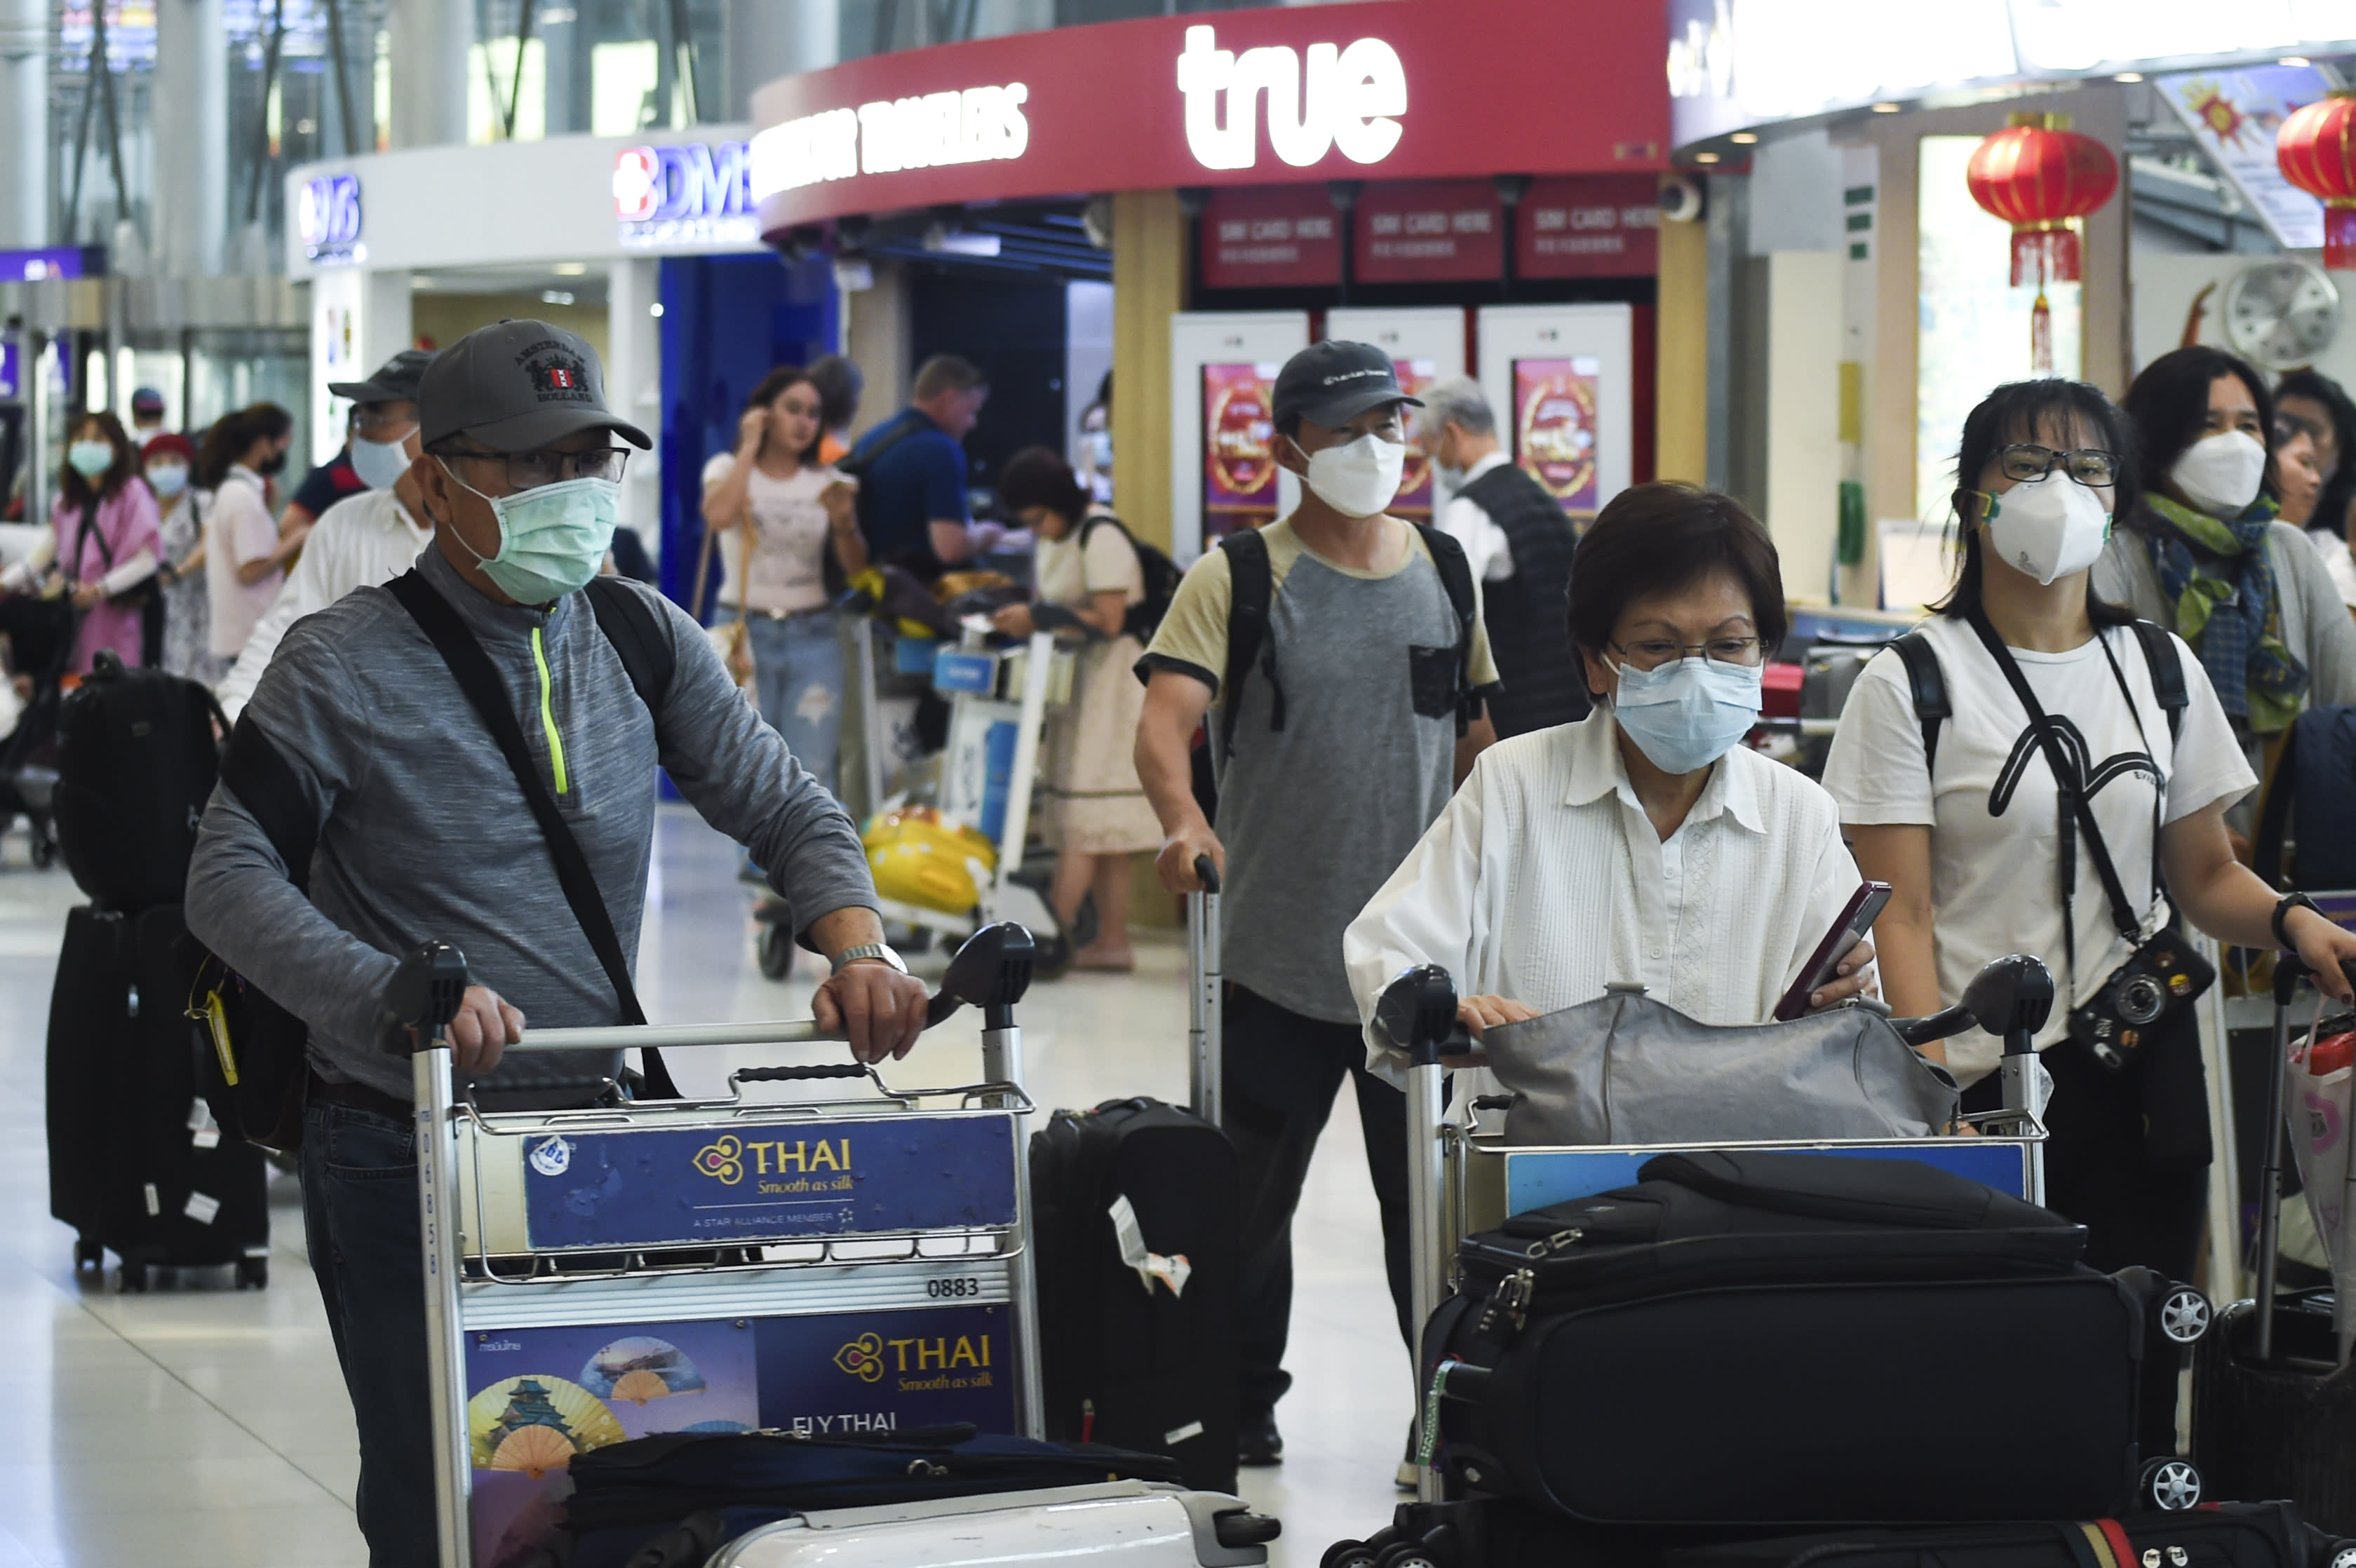 Tourists wearing protective masks walk at Suvarnabhumi Airport in Bangkok, Thailand, 29 January 2020. (Photo by Anusak Laowilas/NurPhoto via Getty Images)